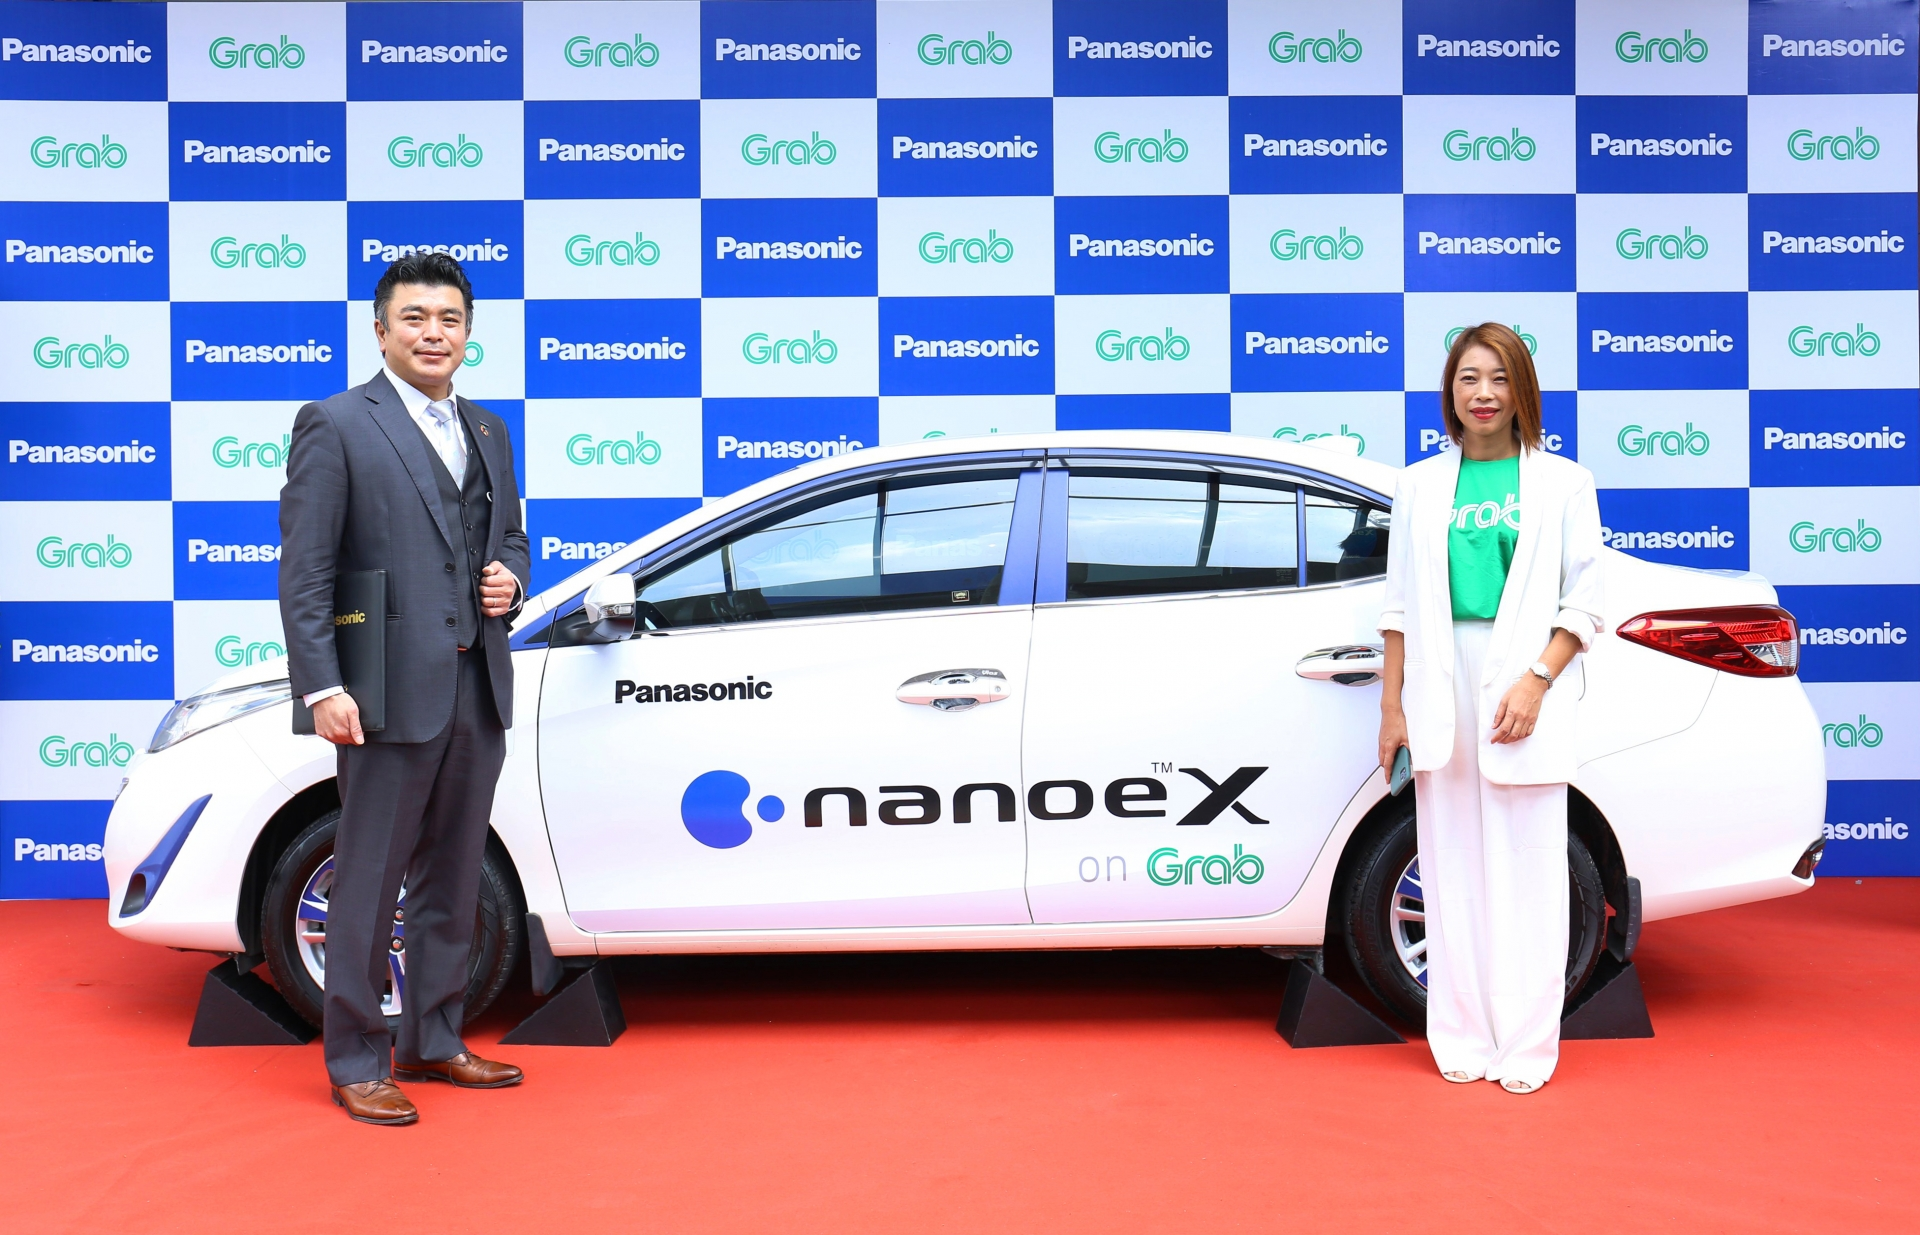 2000 grabcar vehicles to be equipped with panasonic nanoe x air quality solutions